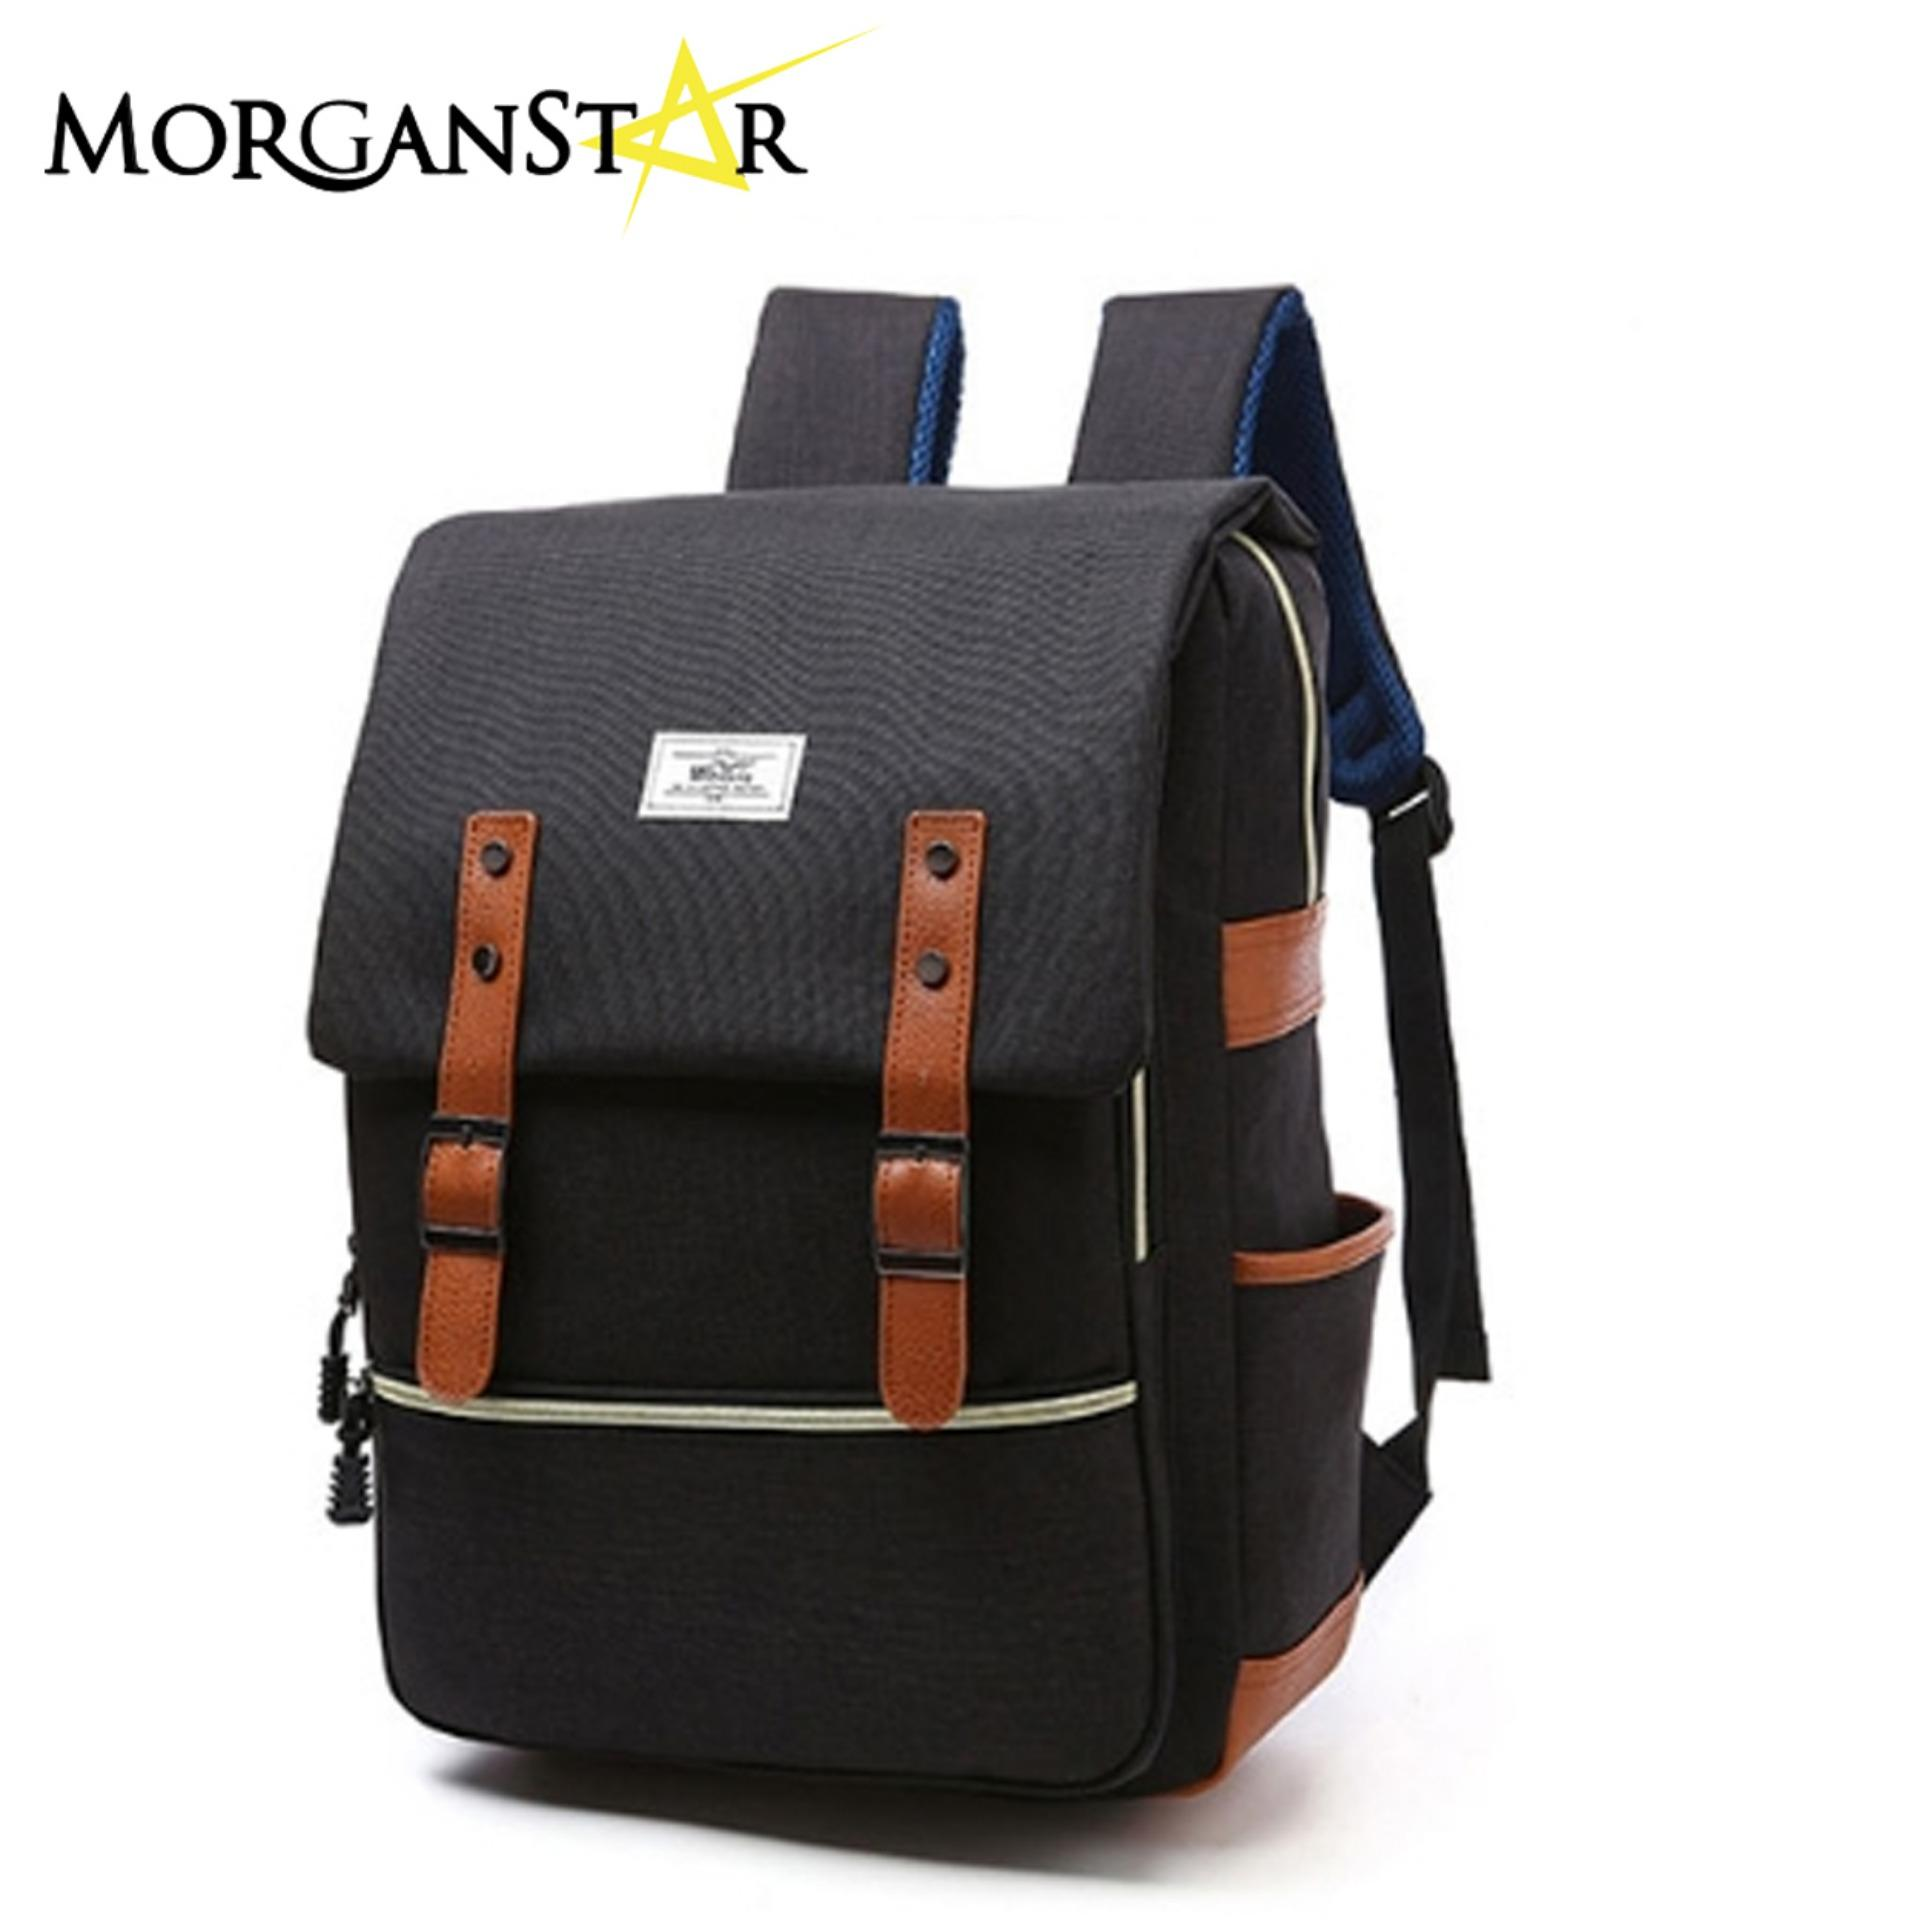 Wowang Unisex Leisure Lightweight Travel Laptop Backpack Men Oxford Cloth Business Backpack (black) By Morganstar Marketing